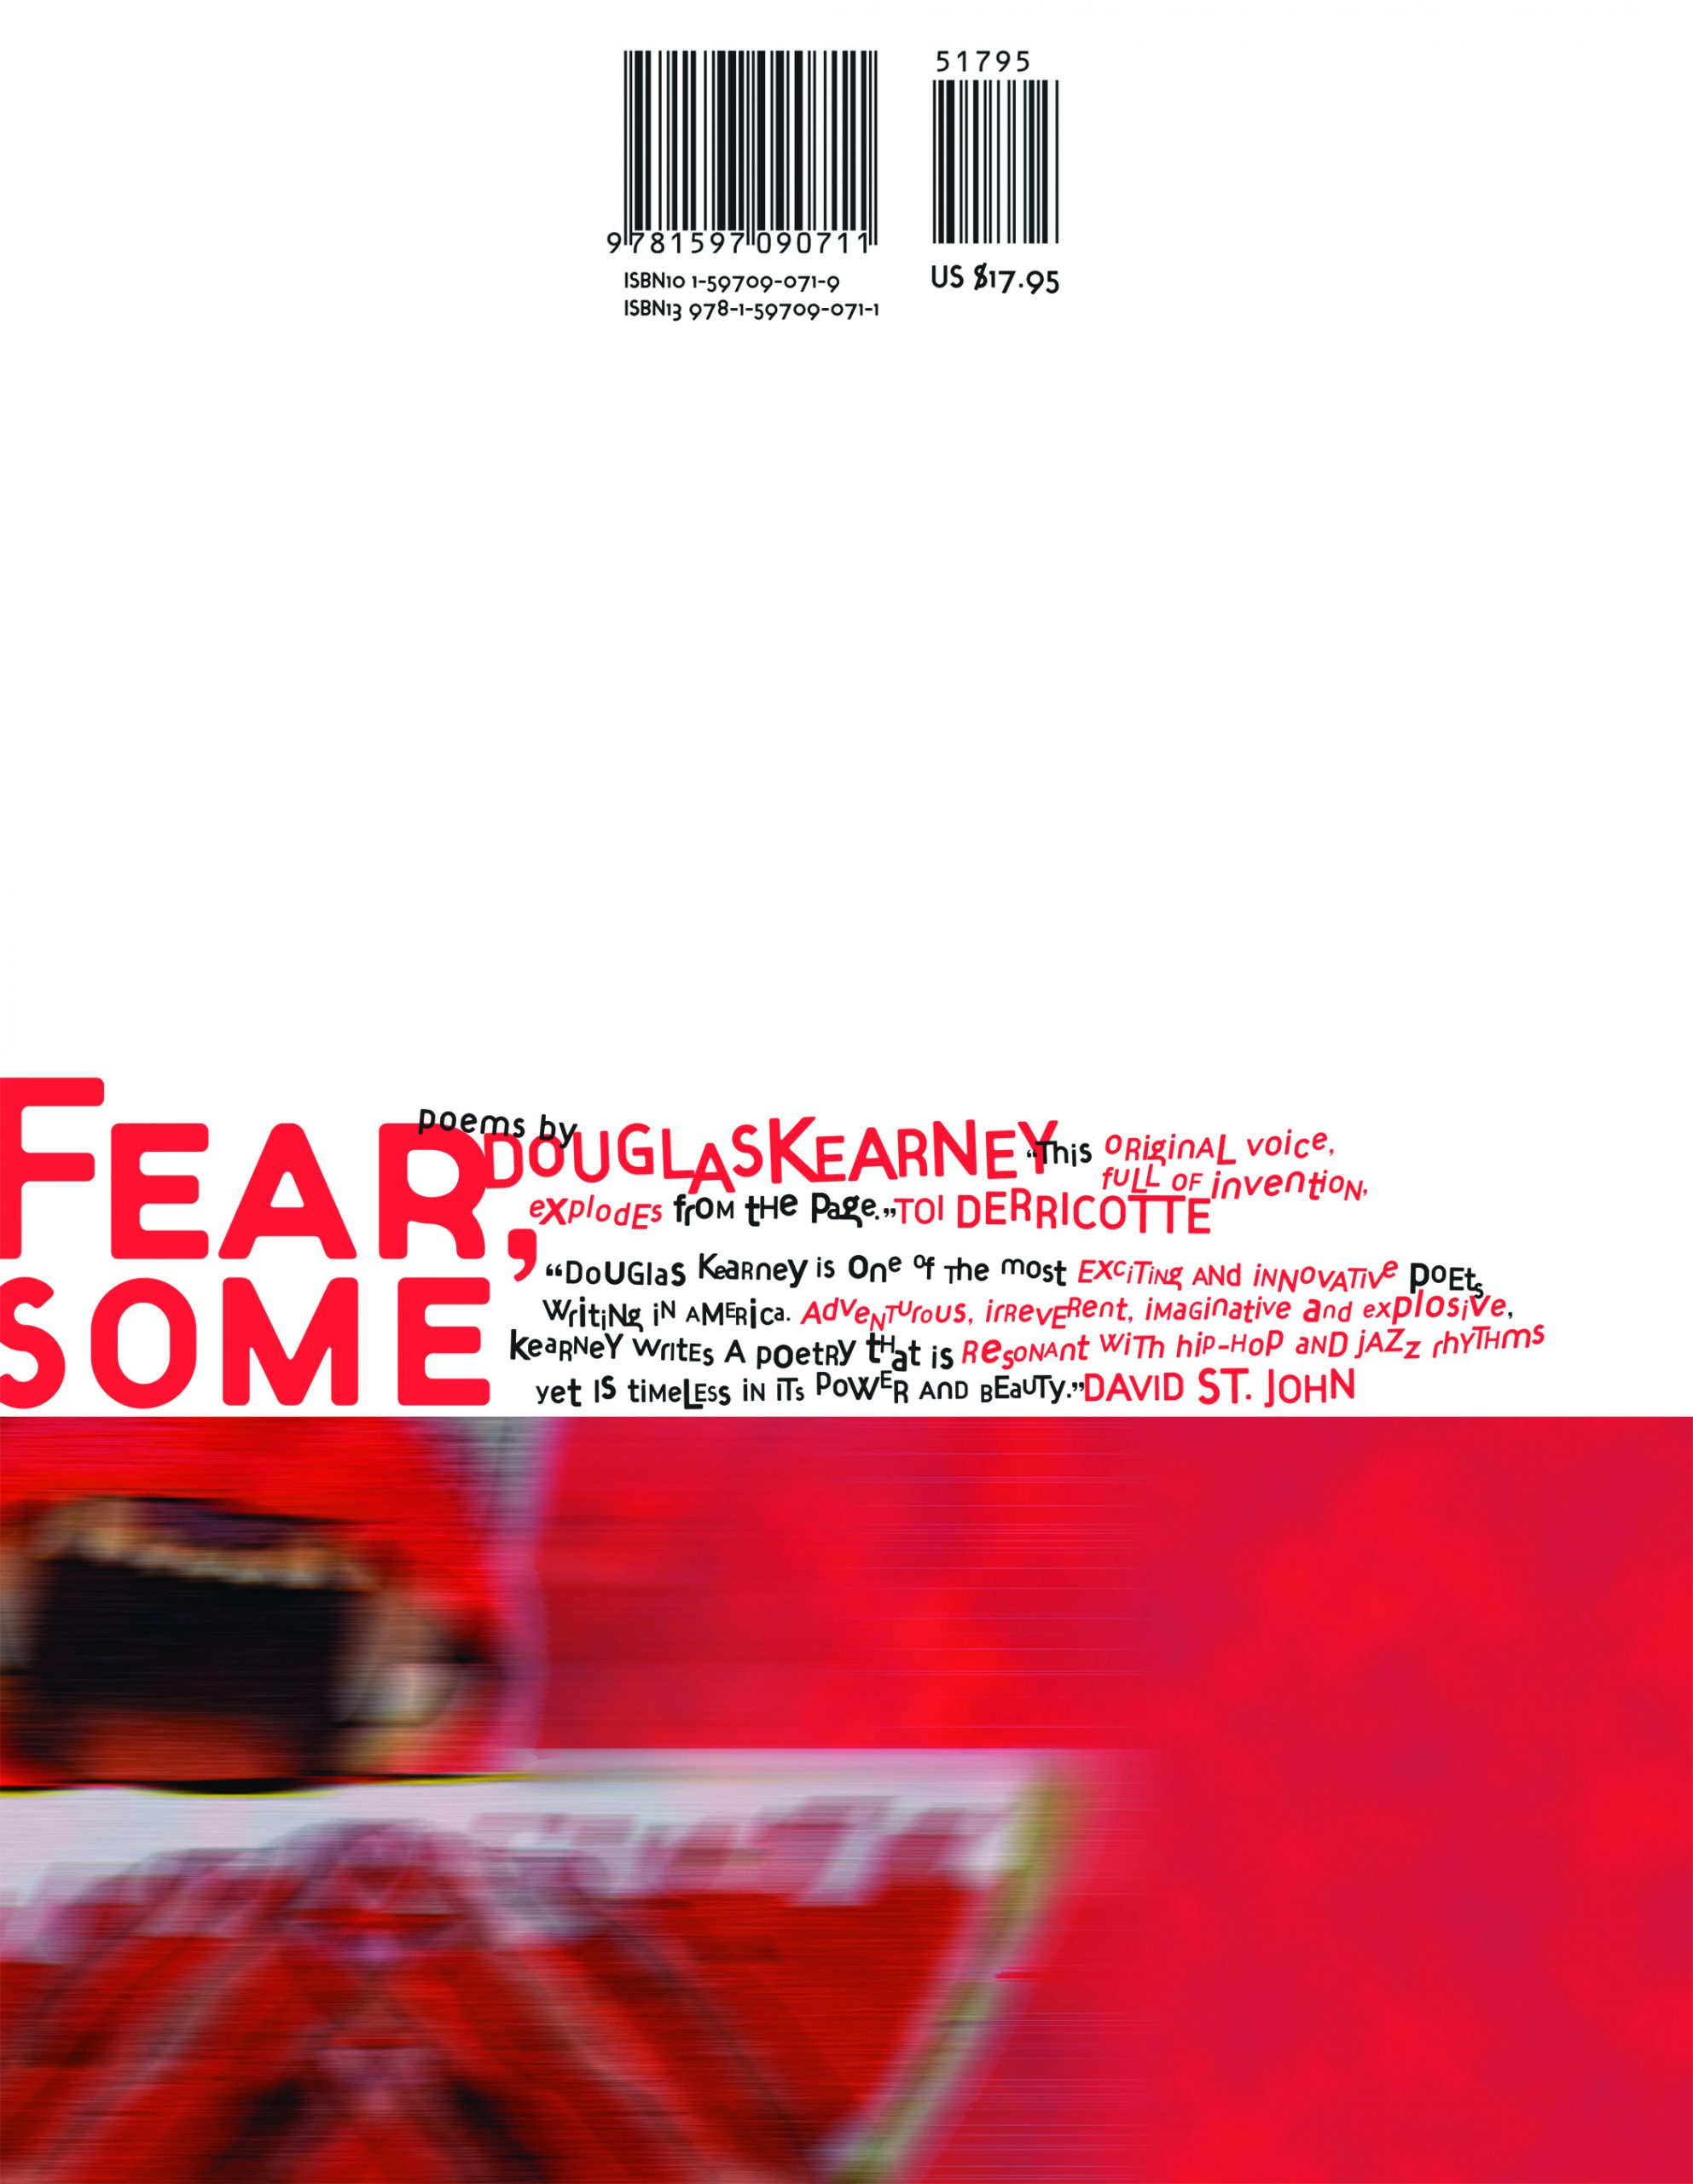 Red and black text stating Fear, Some poems by Douglas Kearney with a blurb by David St. John over a white background with a blurry red abstract painting underneath.